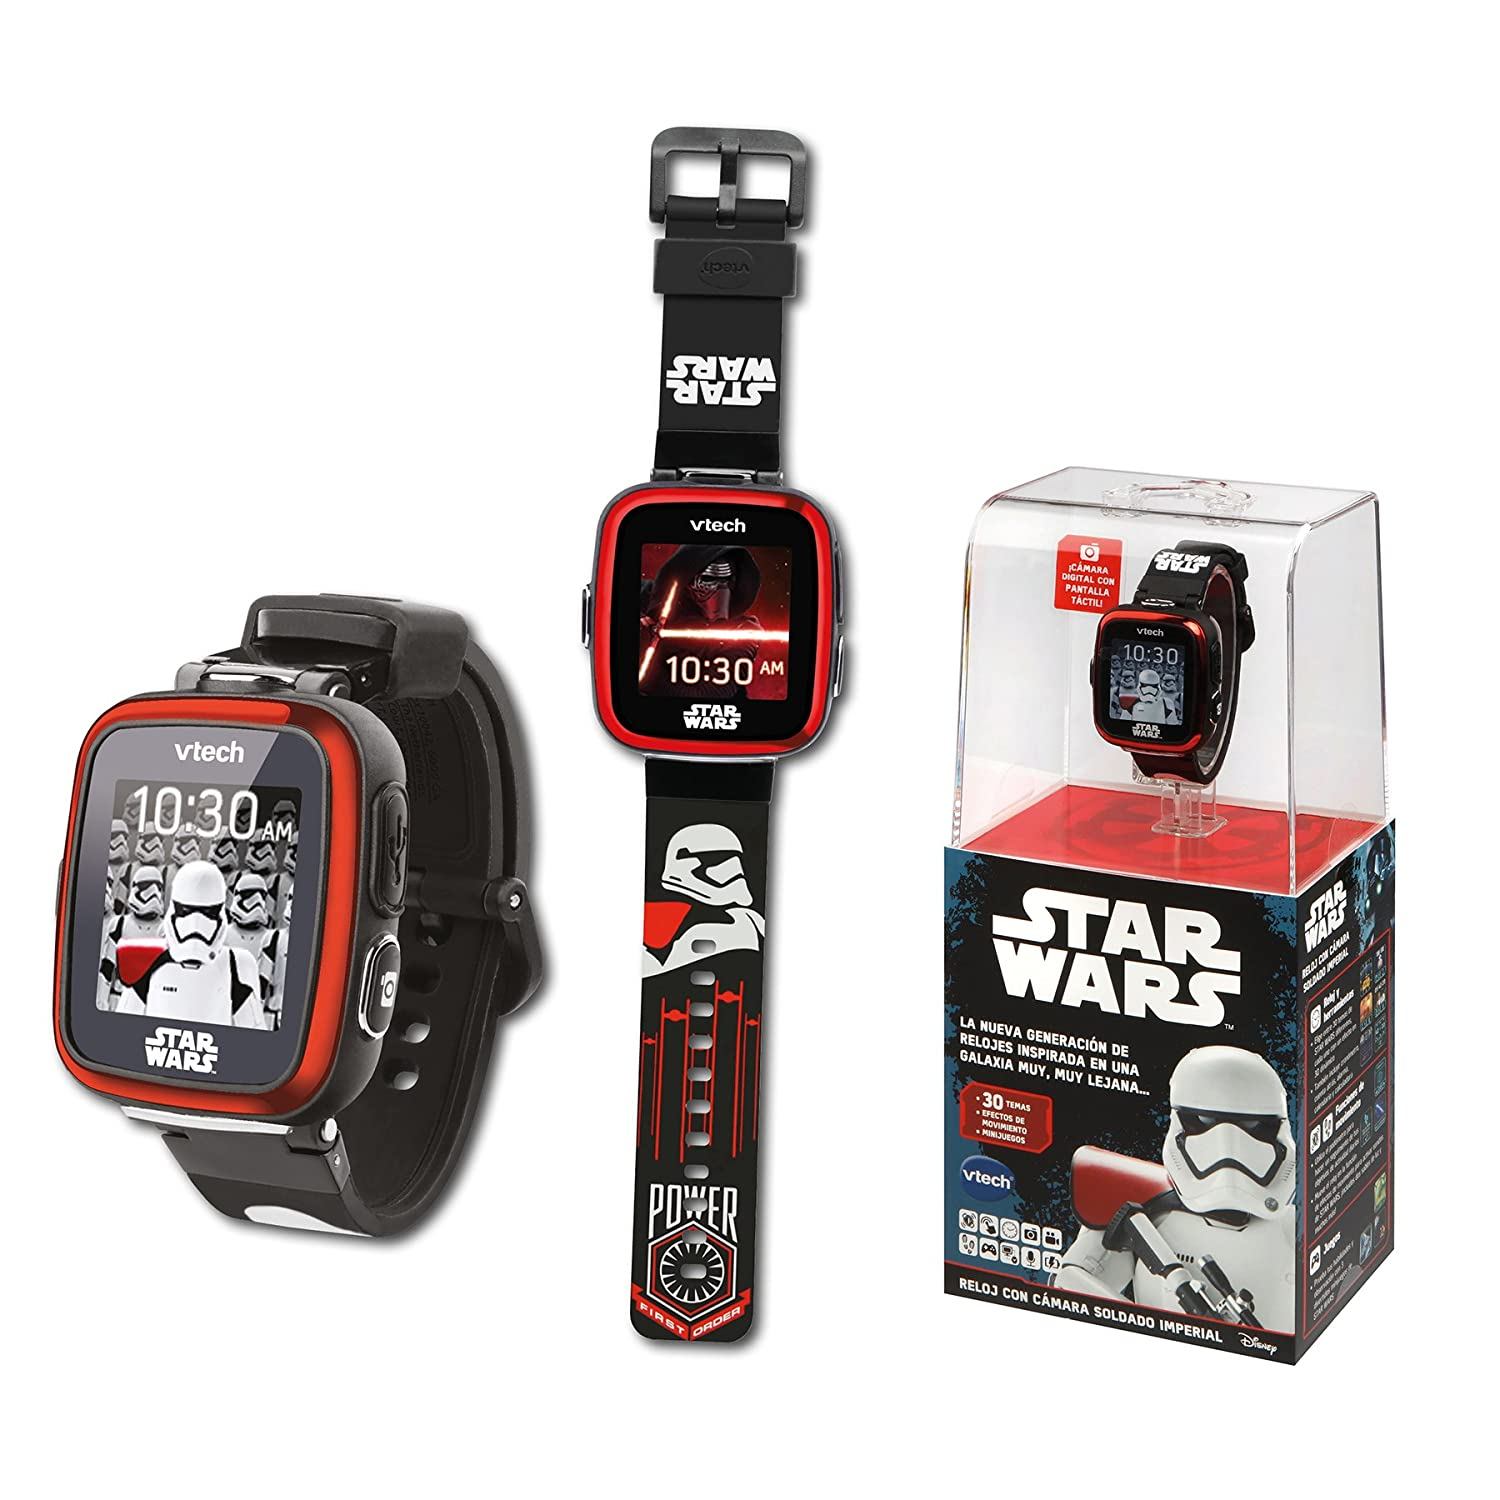 Amazon.com: VTech Multifunction Clock – Star Wars, Trooper Black (80 – 194227): Toys & Games